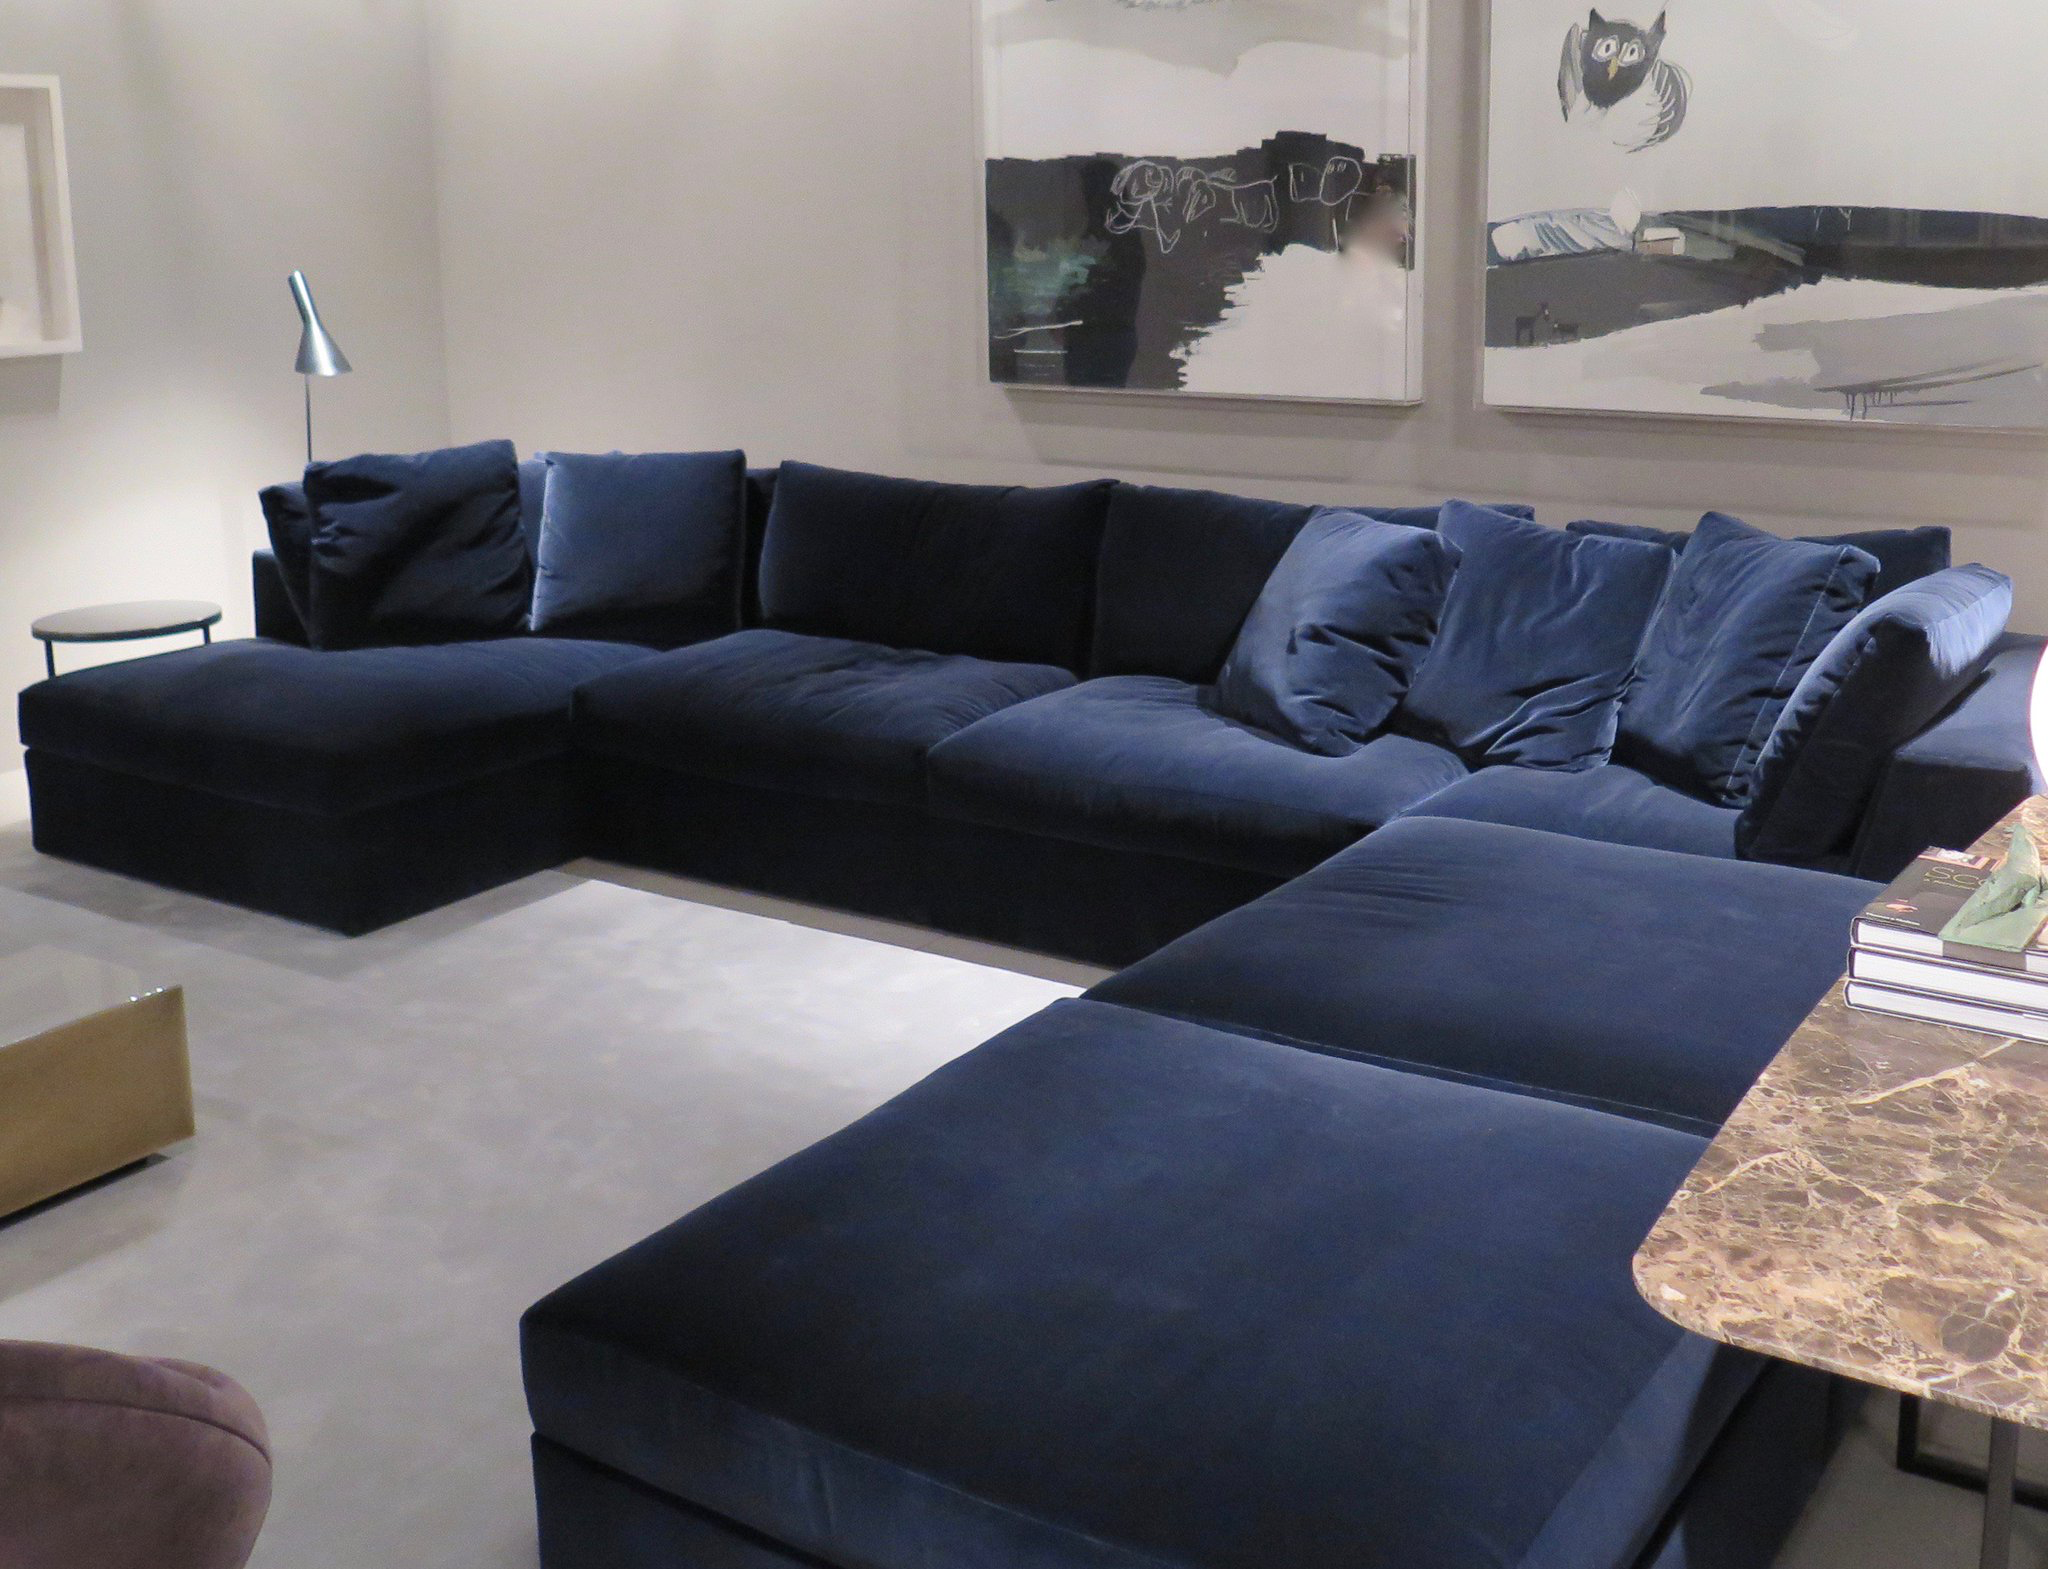 Pin By Rc On Sofas In 2019 D 233 Co Maison D 233 Coration